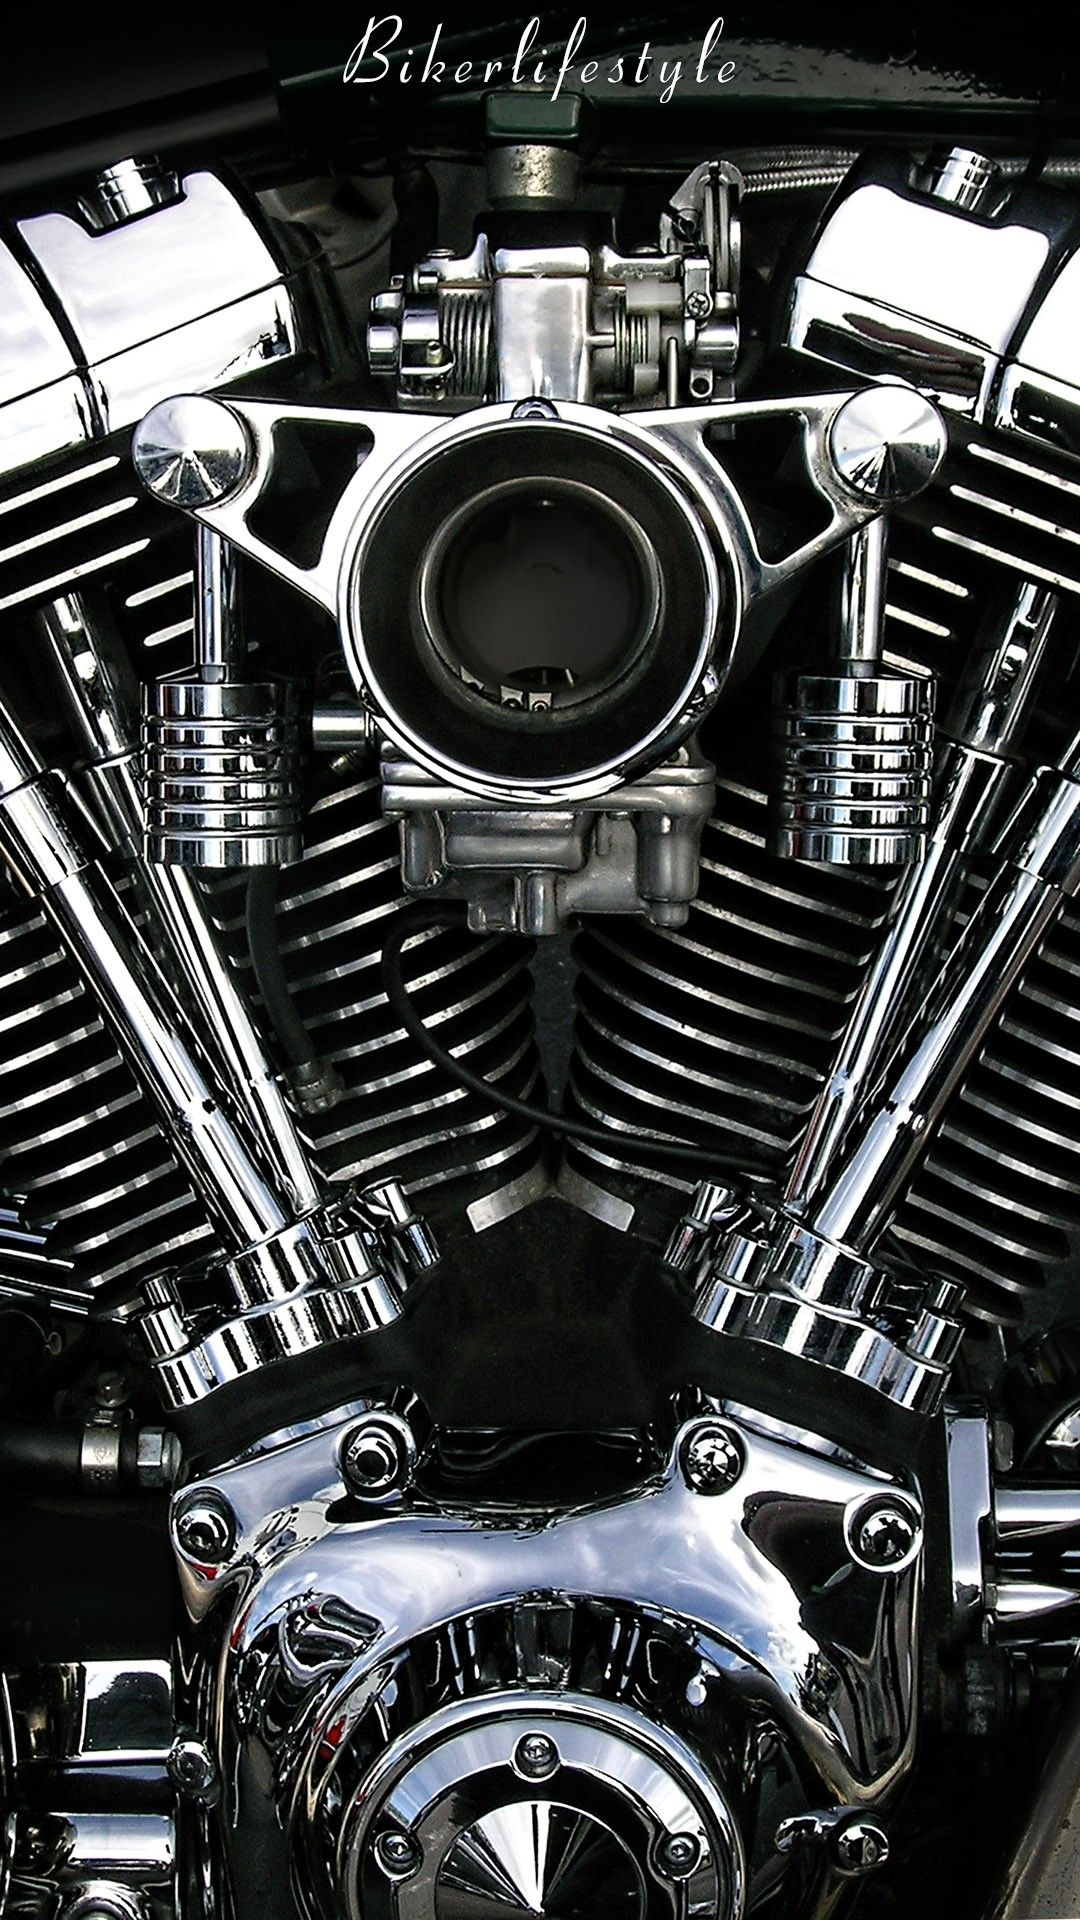 Chrome Bike Wallpaper Motorcycle wallpaper, Harley